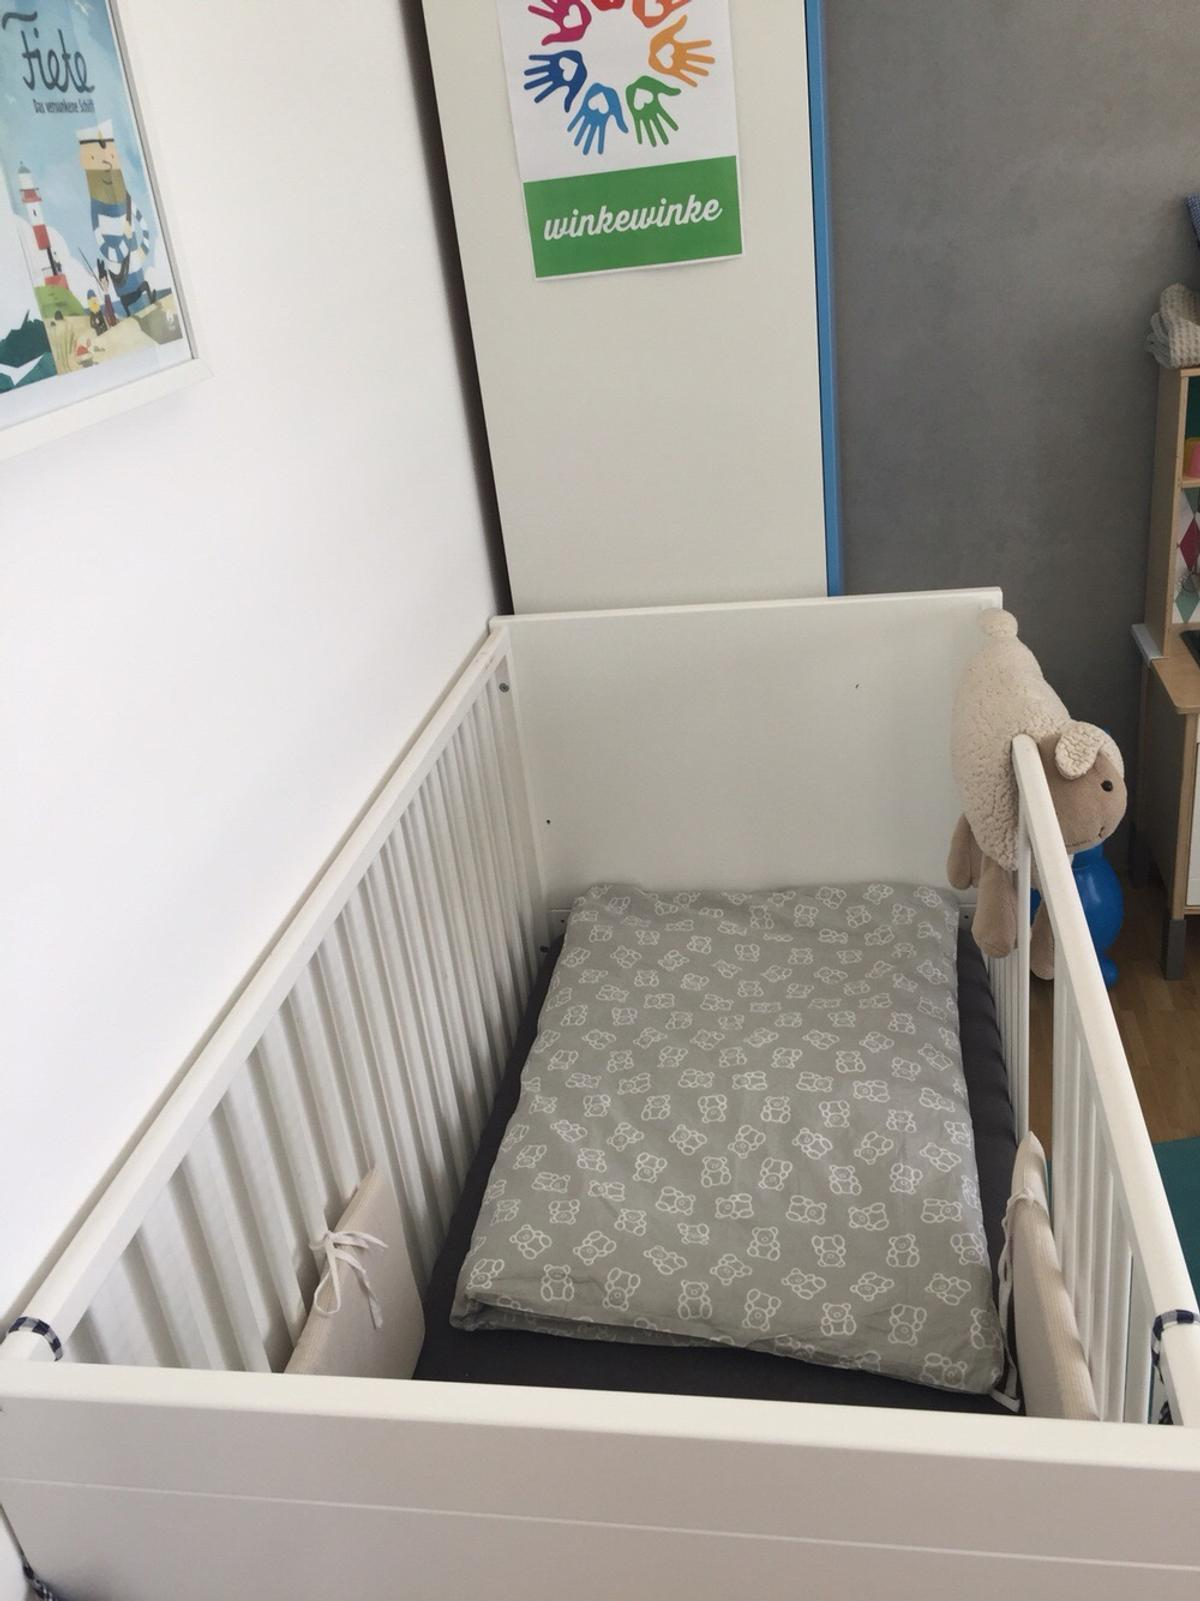 Mini Meise Mini Meise Babybett Mit Wiegefunktion 70x140 In 42553 Velbert For €100.00 For Sale | Shpock